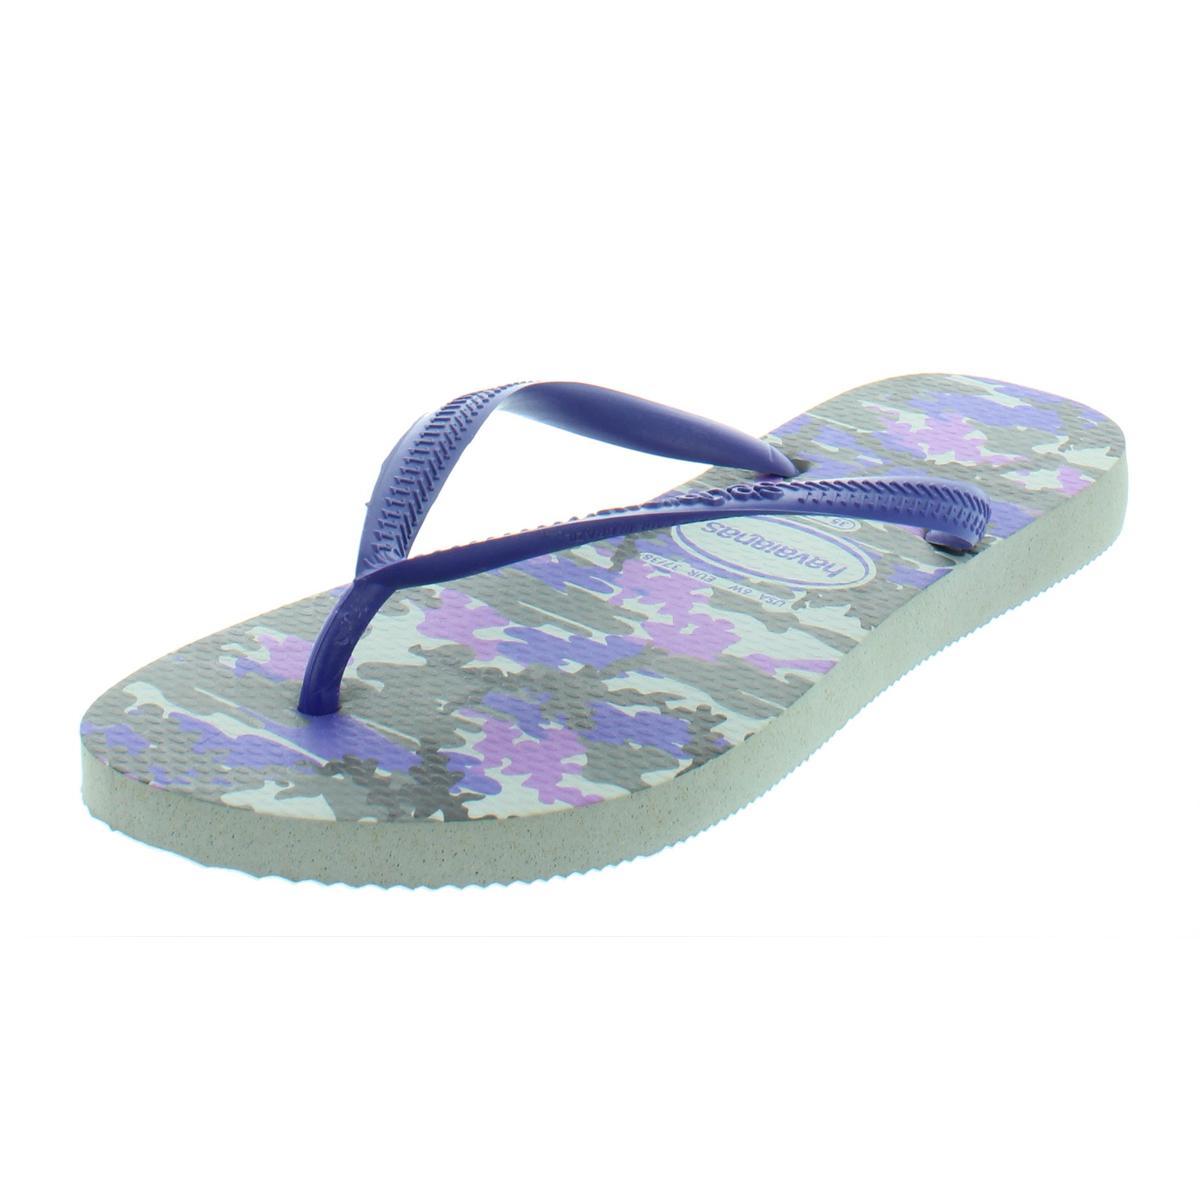 83bf4828fa278 Details about Havaianas Womens Ice Grey Multi Thongs Flip-Flops Shoes 6  Medium (B